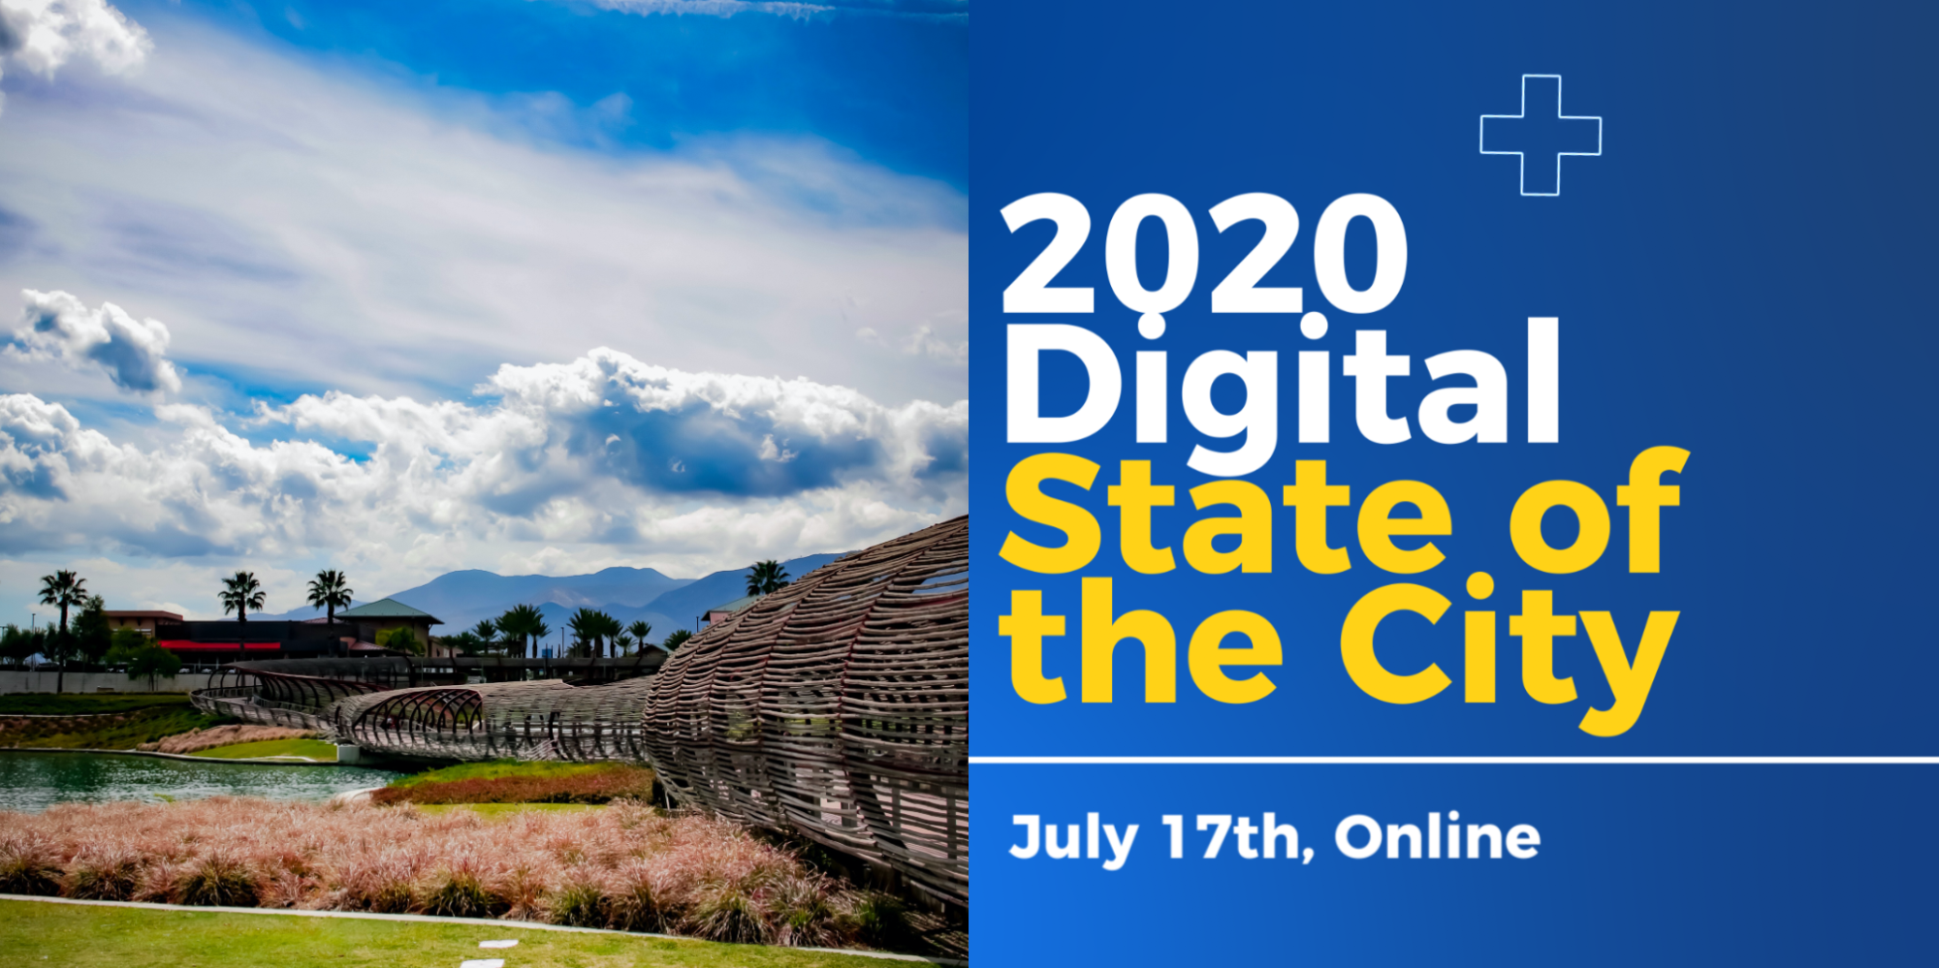 2020 Digital State of the City